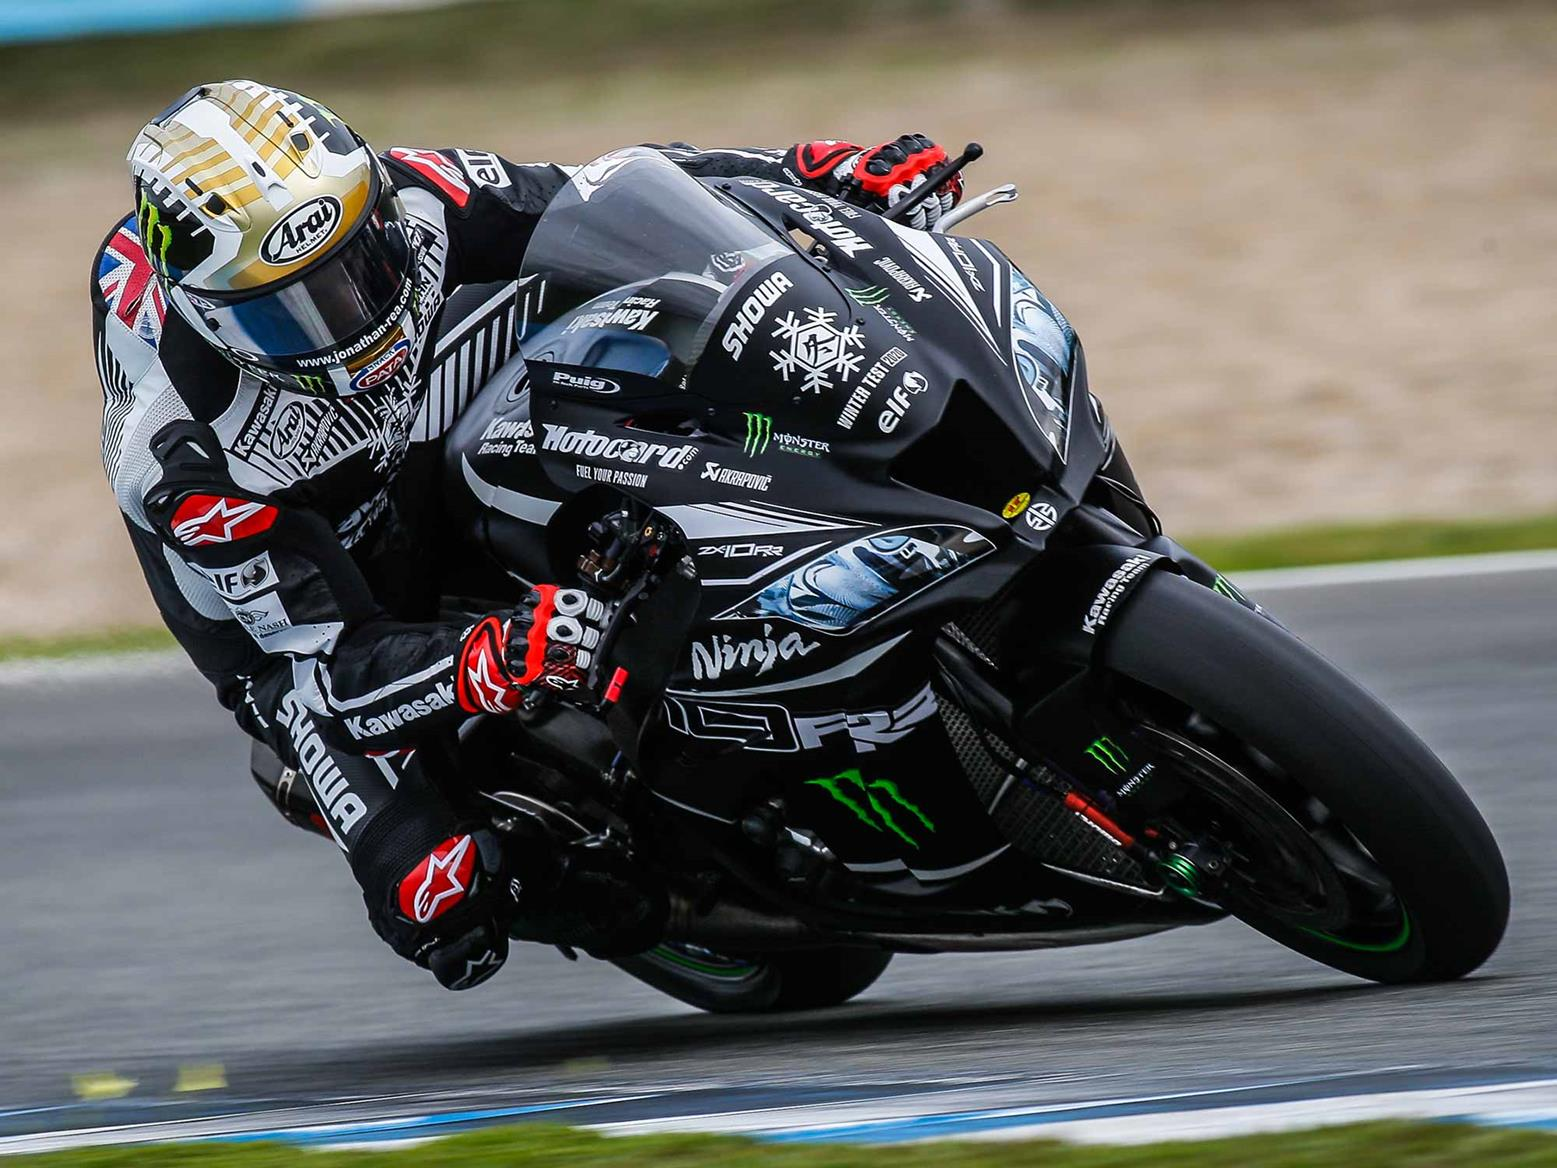 Jonathan Rea eases to the front at Jerez test